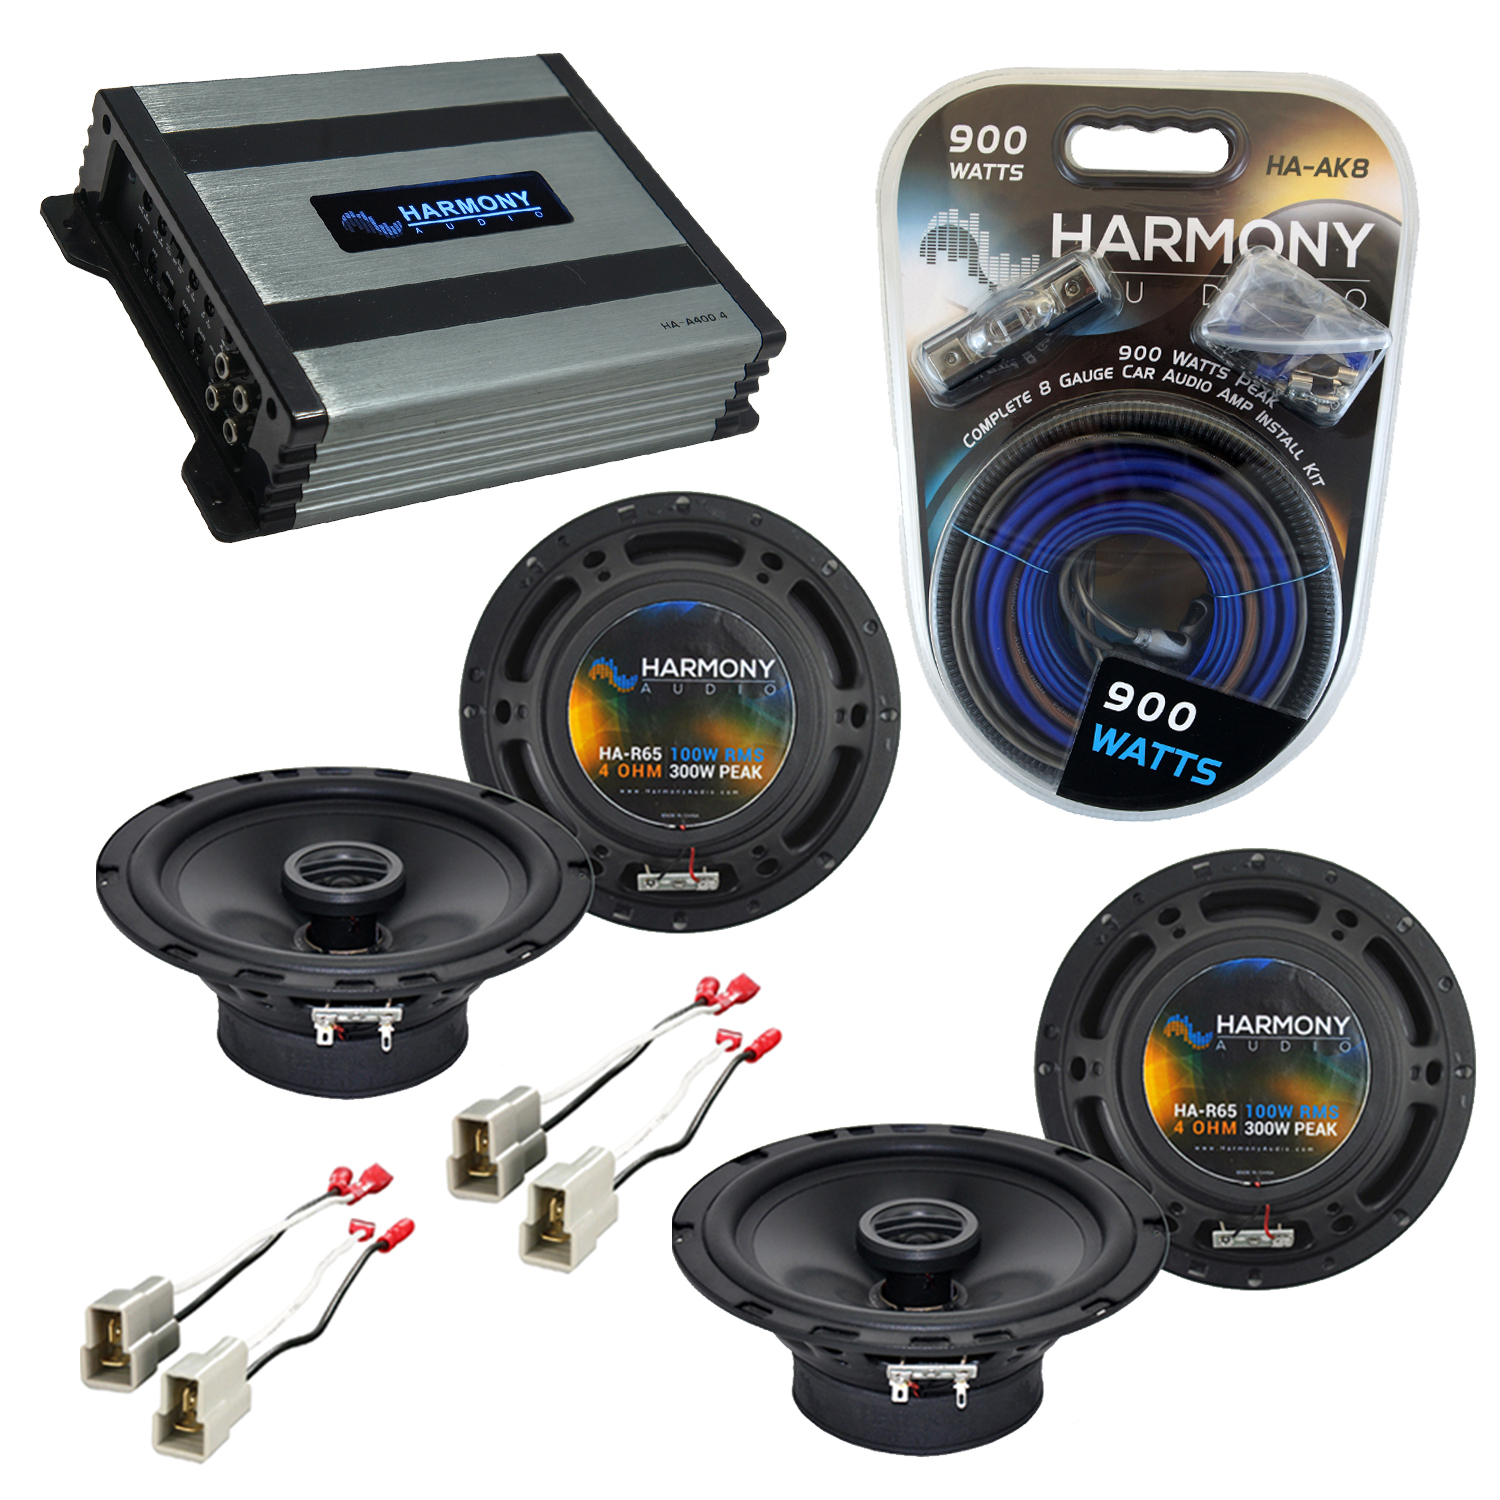 Compatible with Nissan 300ZX 1984-1989 Speaker Replacement Harmony (2) R65 & Harmony HA-A400.4 Amp